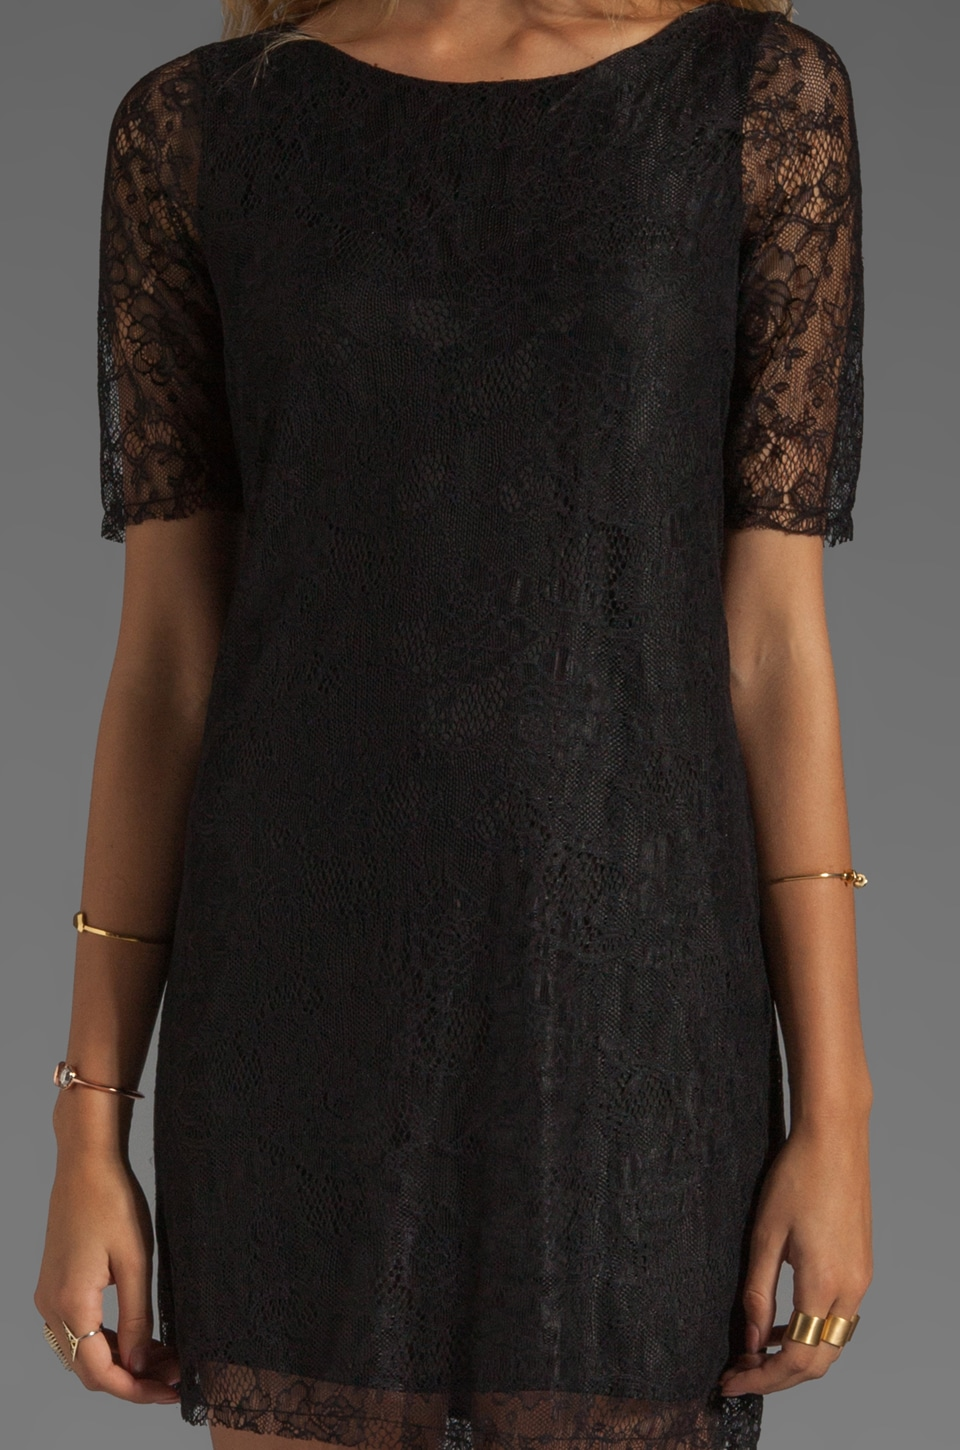 PJK Patterson J. Kincaid Nicole Lace Shift Dress in Black